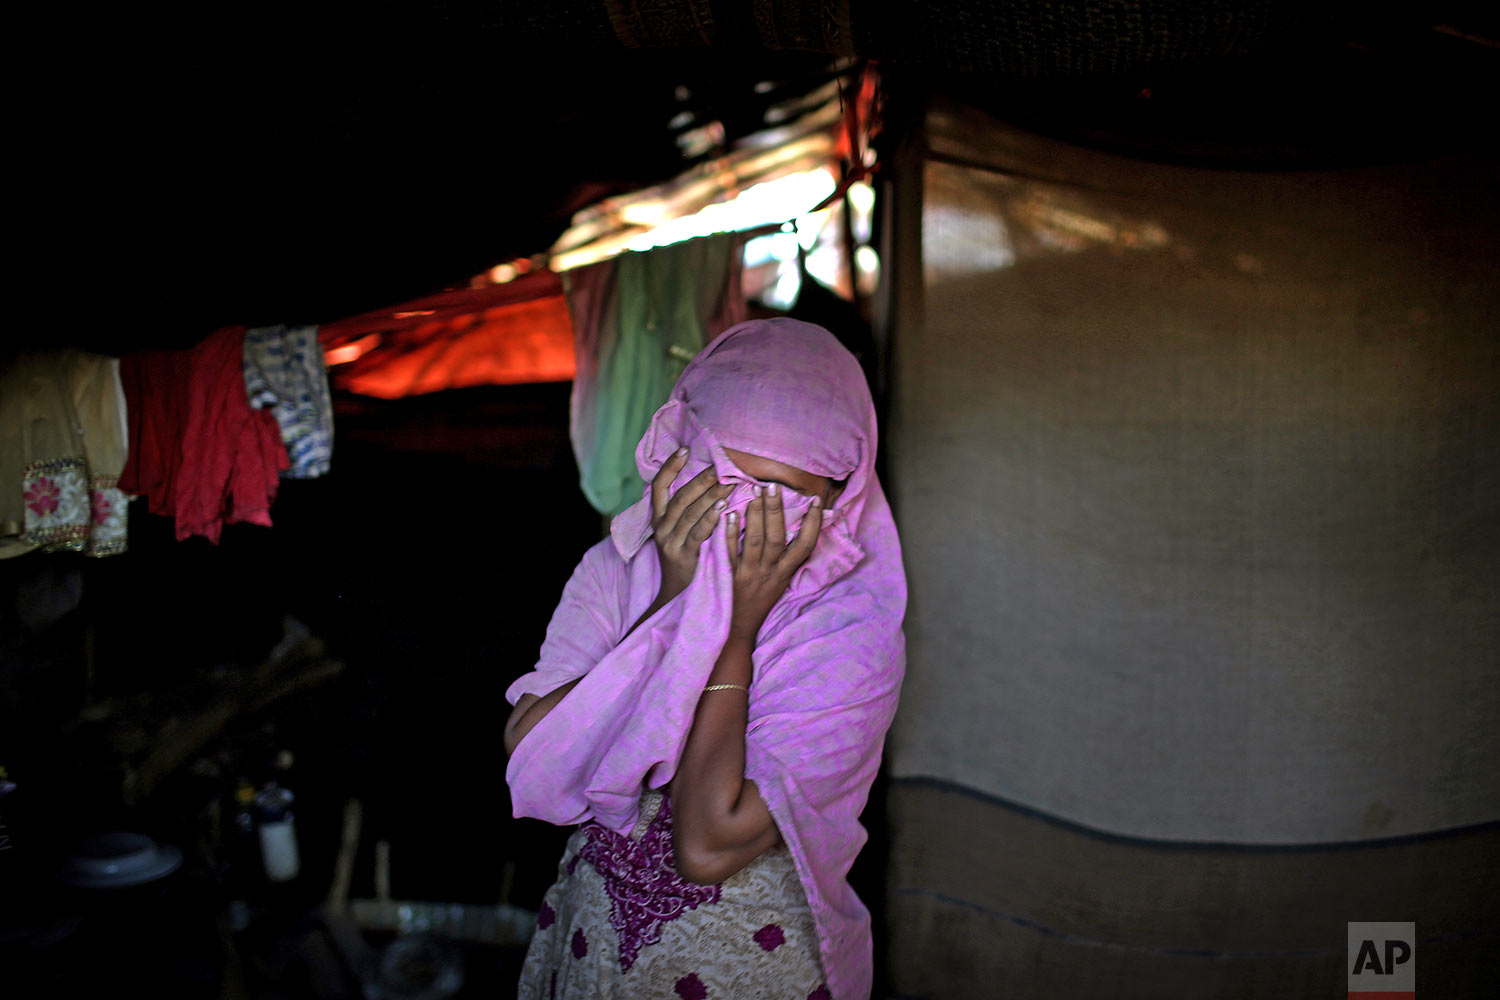 In this Monday, Nov. 20, 2017, photo, A, 20, mother of one, who says she was raped by members of Myanmar's armed forces in late August, covers her face while being photographed in her tent in Kutupalong refugee camp in Bangladesh.  (AP Photo/Wong Maye-E)